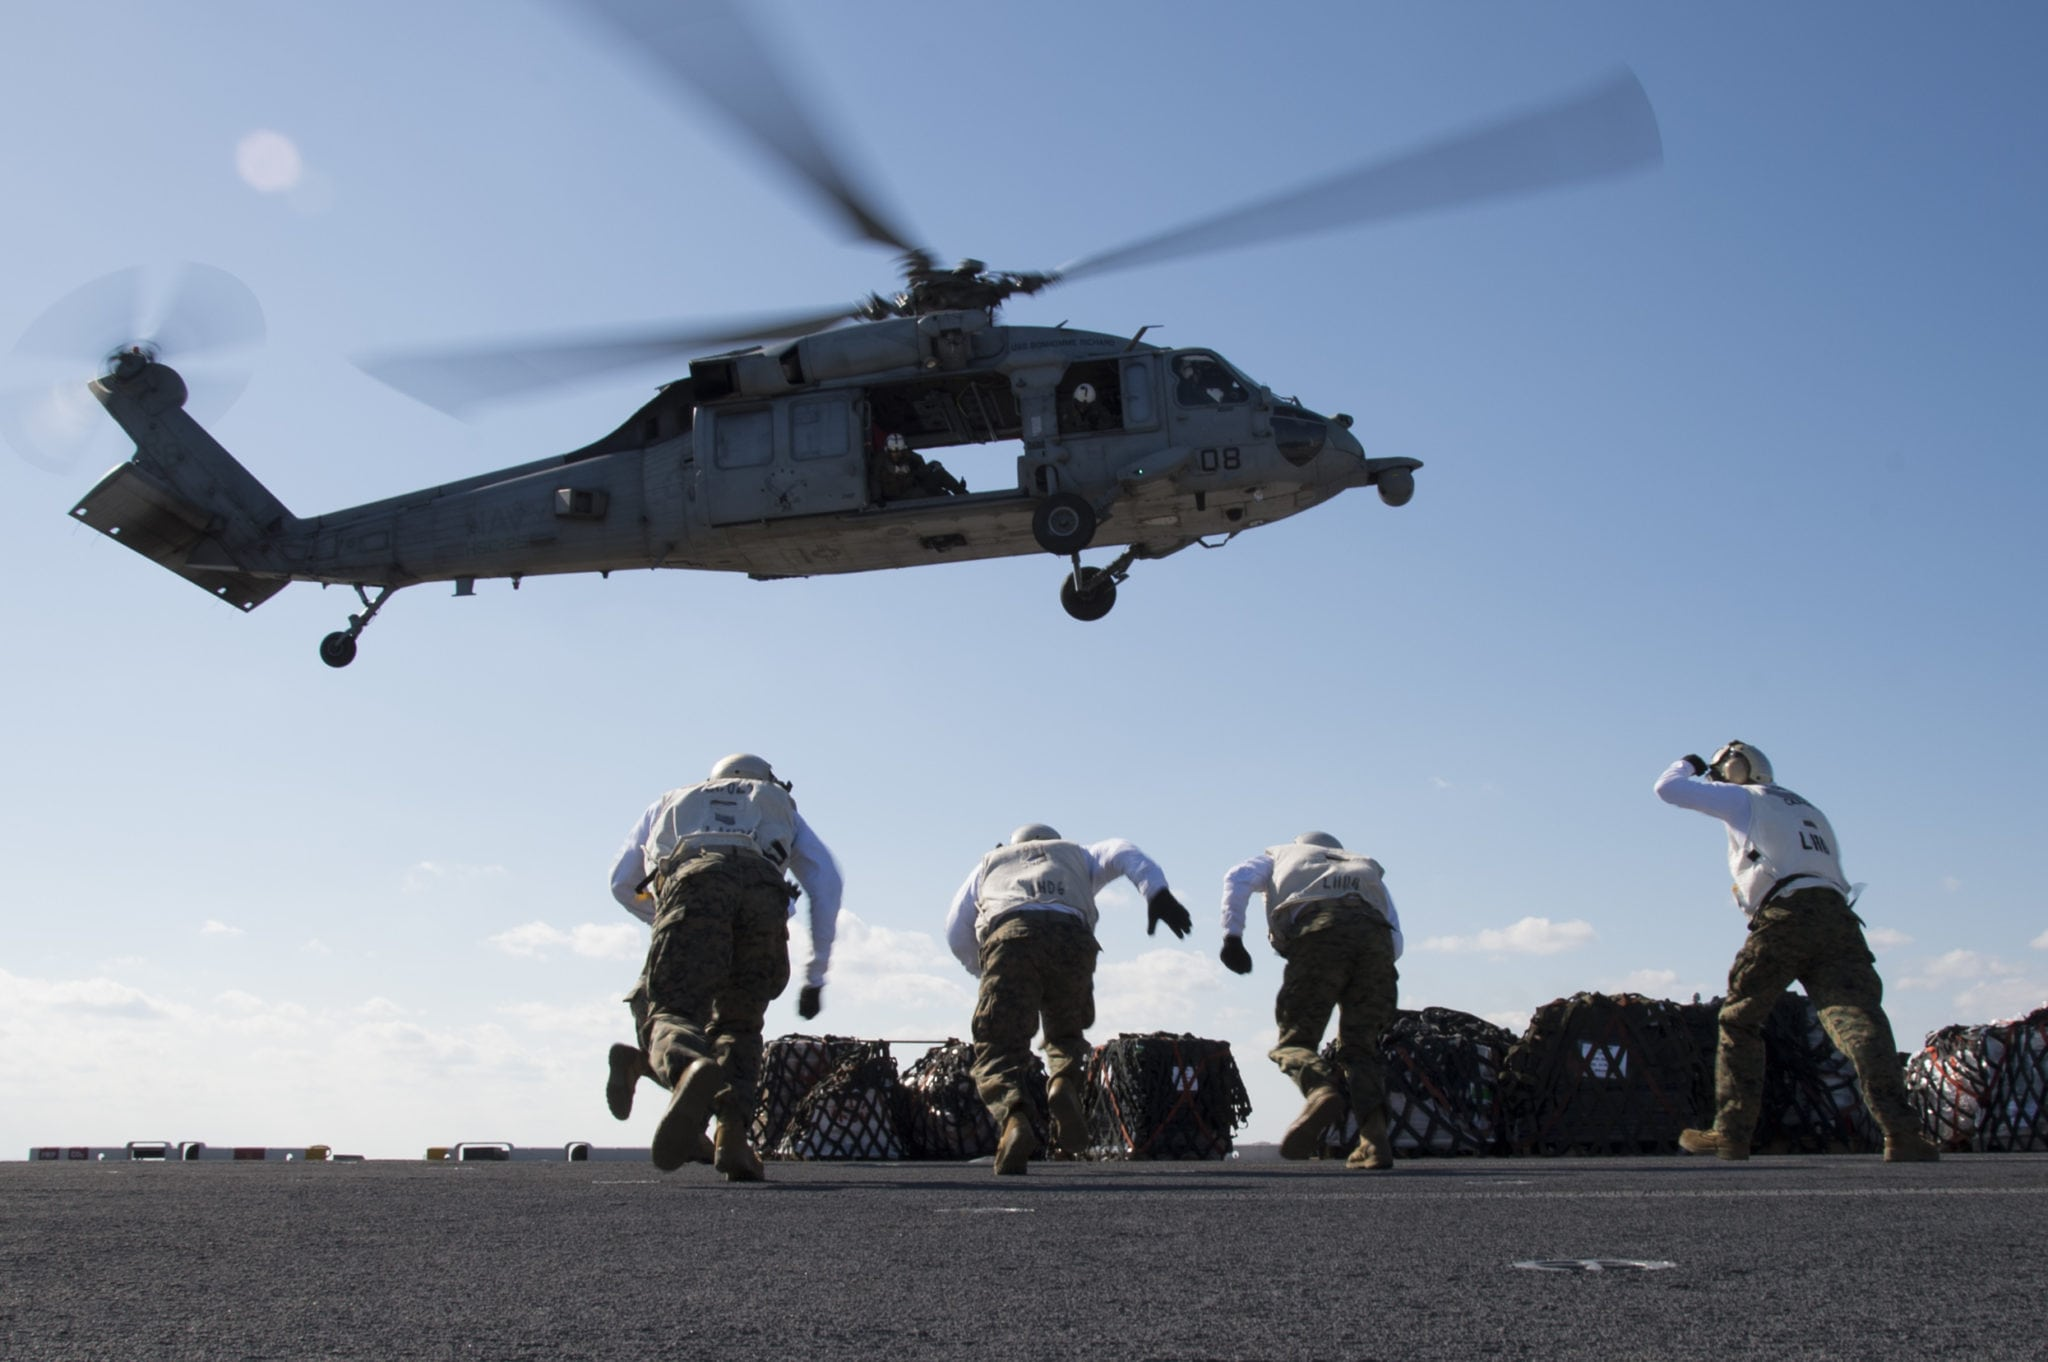 170228-N-XK809-250 EAST CHINA SEA (Feb. 28, 2017) Marines assigned to Combat Cargo receive supply pallets from an MH-60S Sea Hawk, assigned to Helicopter Sea Combat Squadron (HSC) 25, on the flight deck of amphibious assault ship USS Bonhomme Richard (LHD 6) during a replenishment-at-sea (RAS) with the Henry J. Kaiser-class replenishment oiler USNS Pecos (T-AO 197). Bonhomme Richard is on a routine patrol, operating in the Indo-Asia-Pacific region to serve as a forward-capability for any type of contingency. (U.S. Navy photo by Mass Communication Specialist 3rd Class William Sykes/Released)